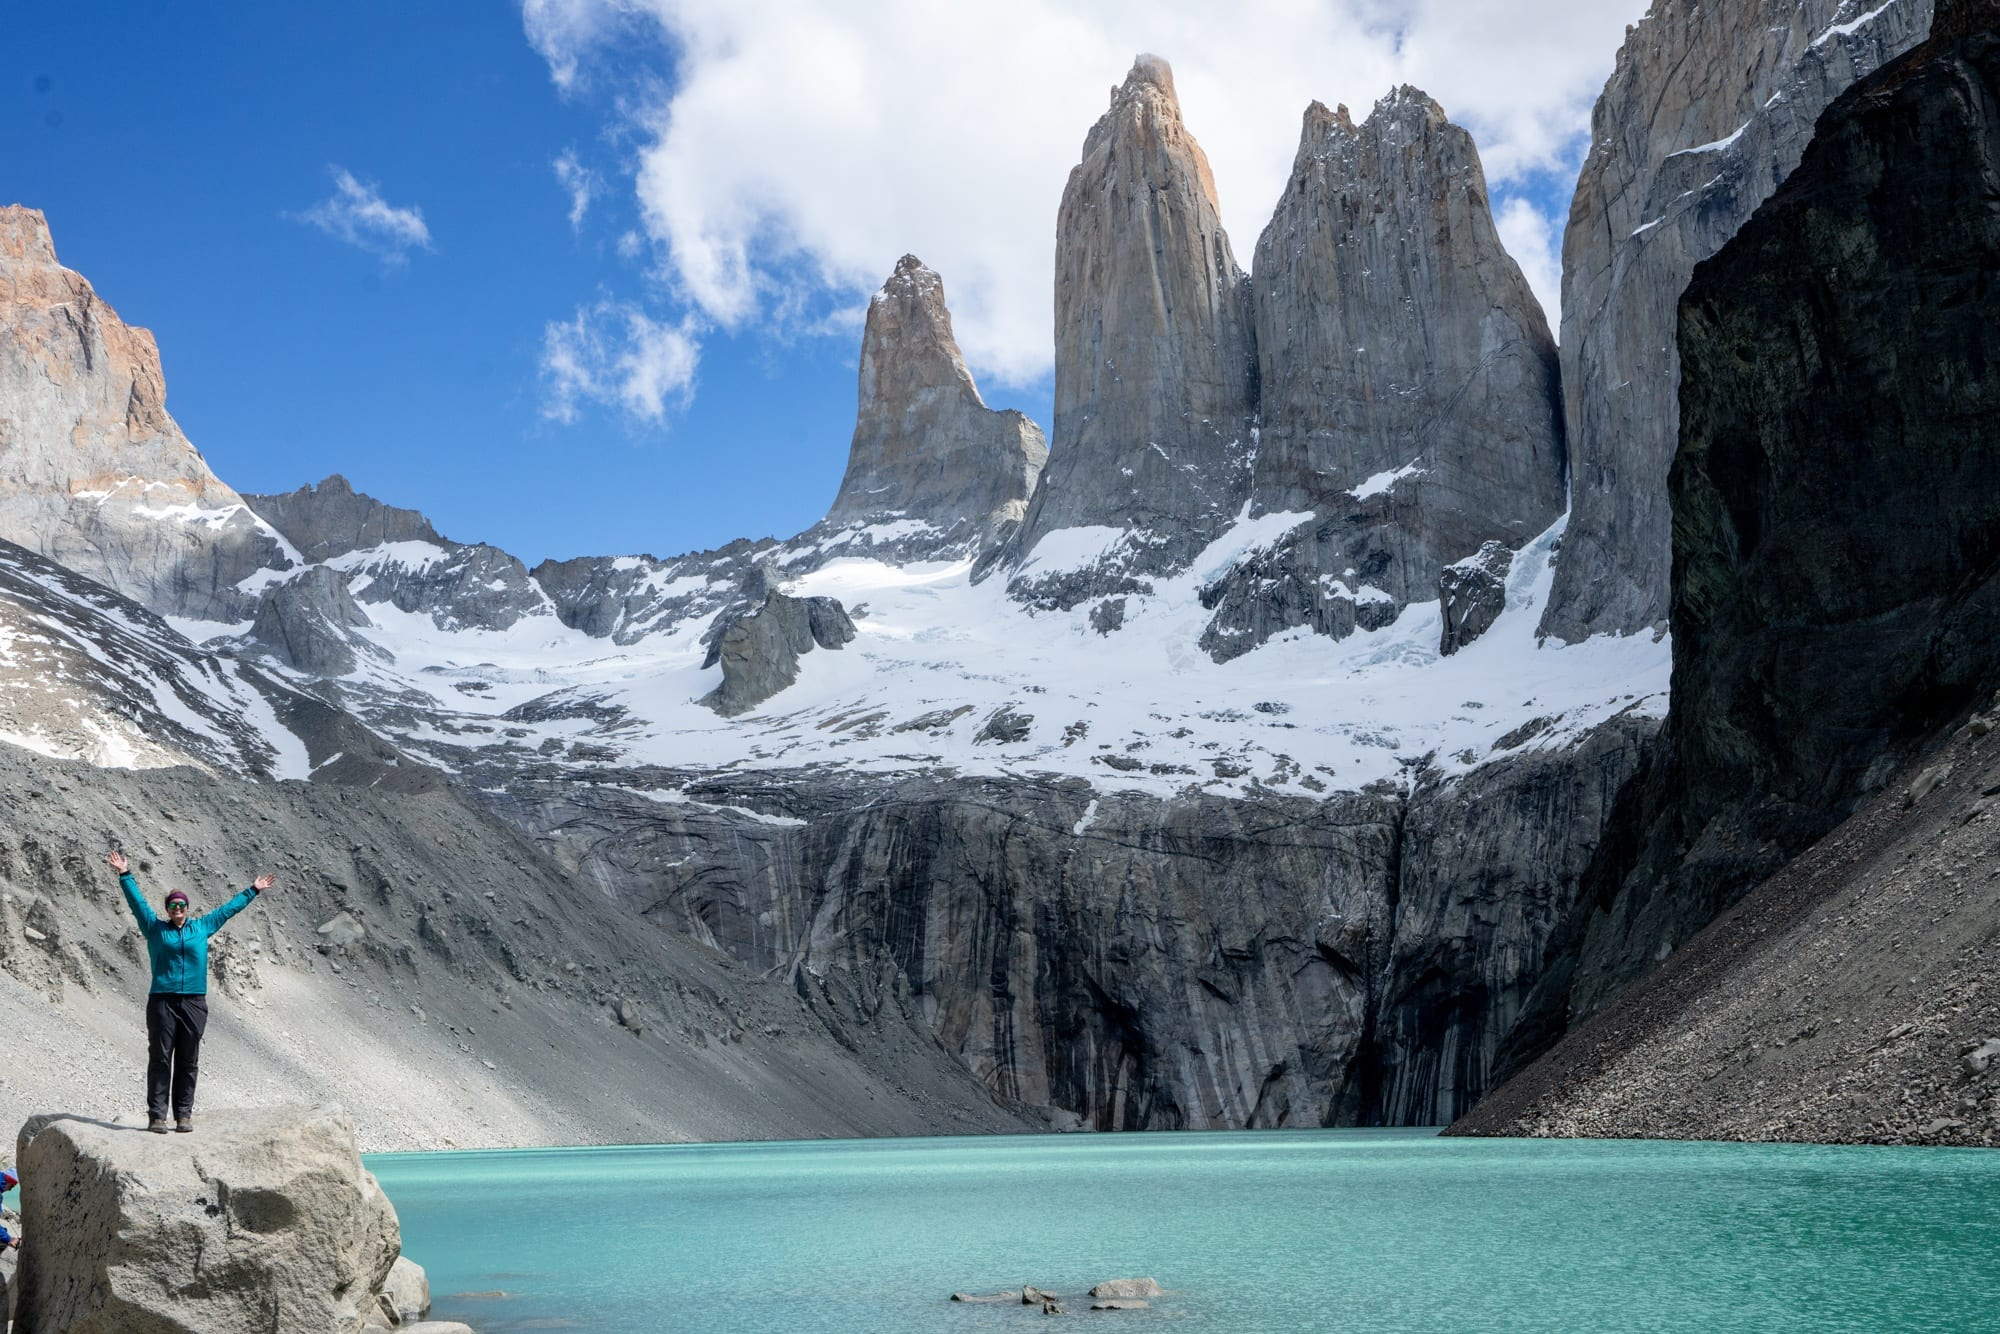 Base of the Towers on the W Trek in Torres Del Paine